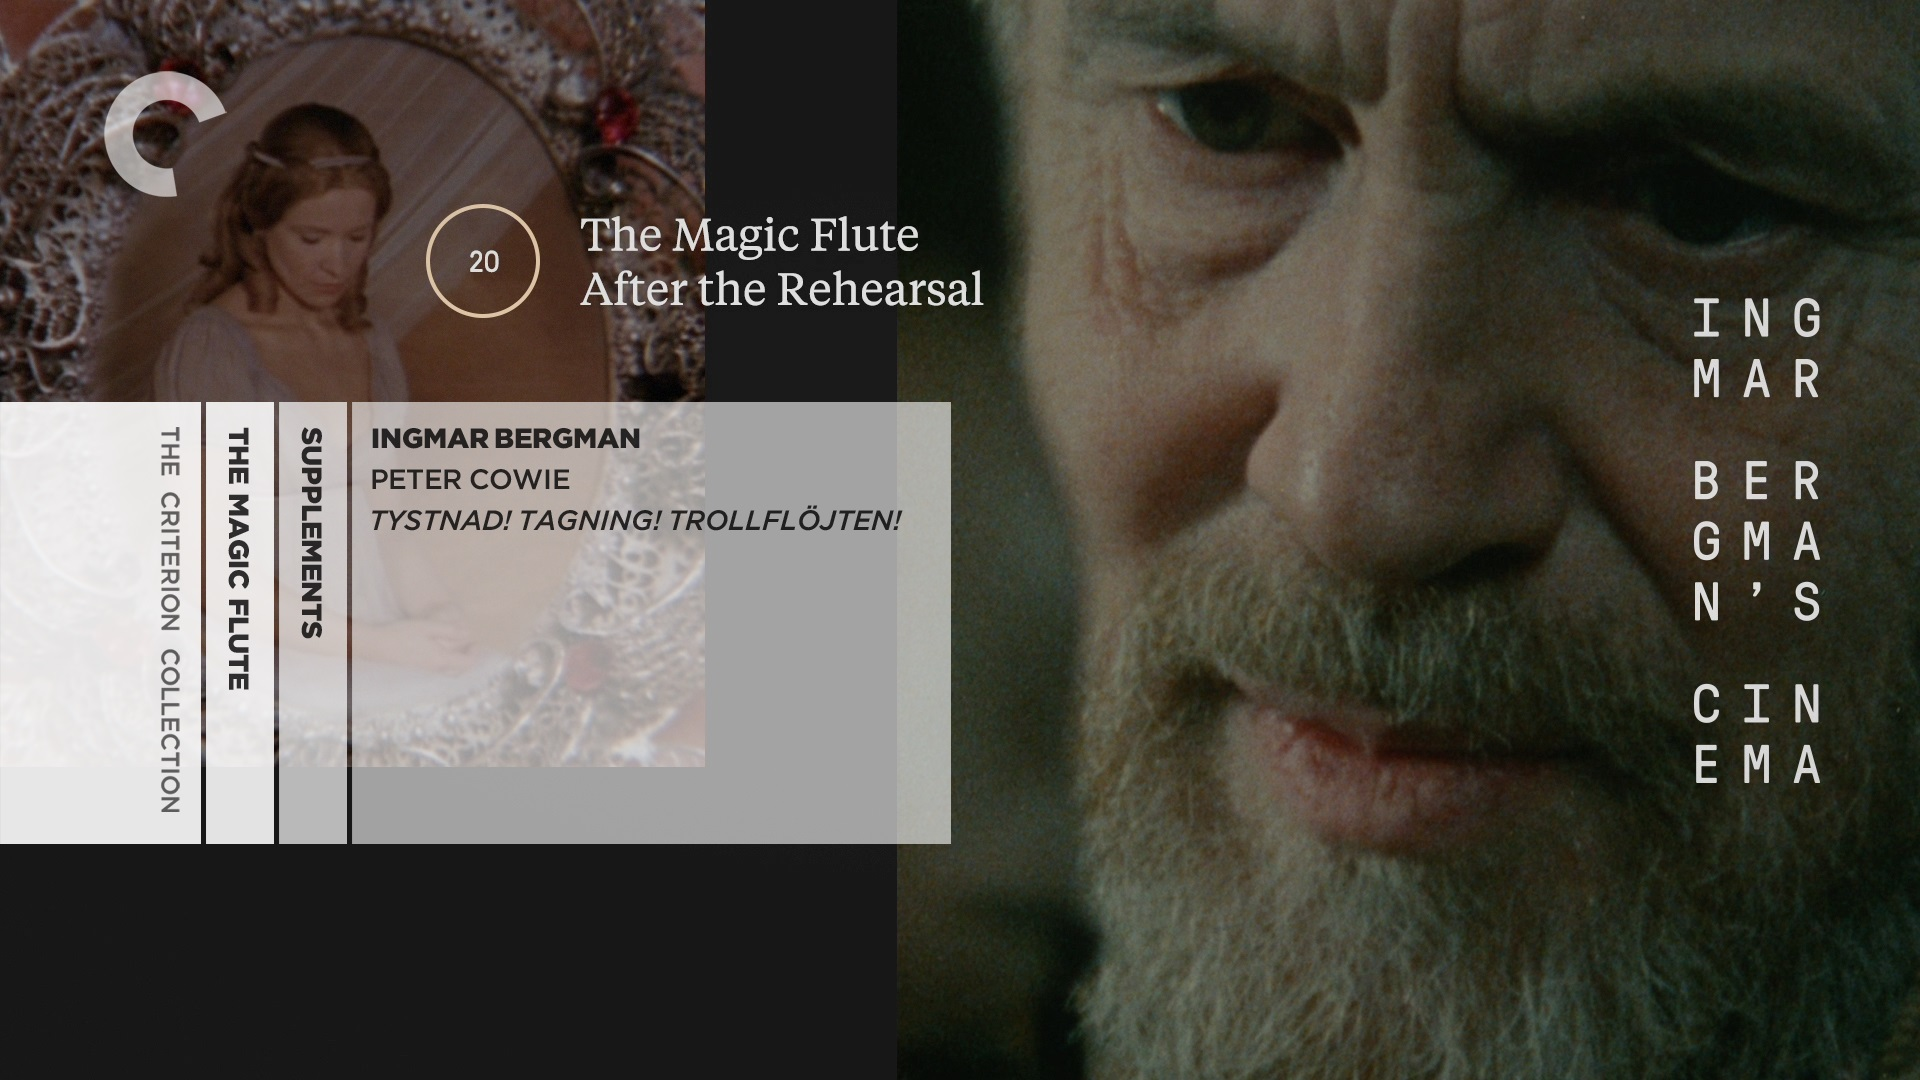 The Magic Flute / Trollflöjten (1975) + After the Rehearsal / Efter repetitionen (1984) [Criterion Collection]